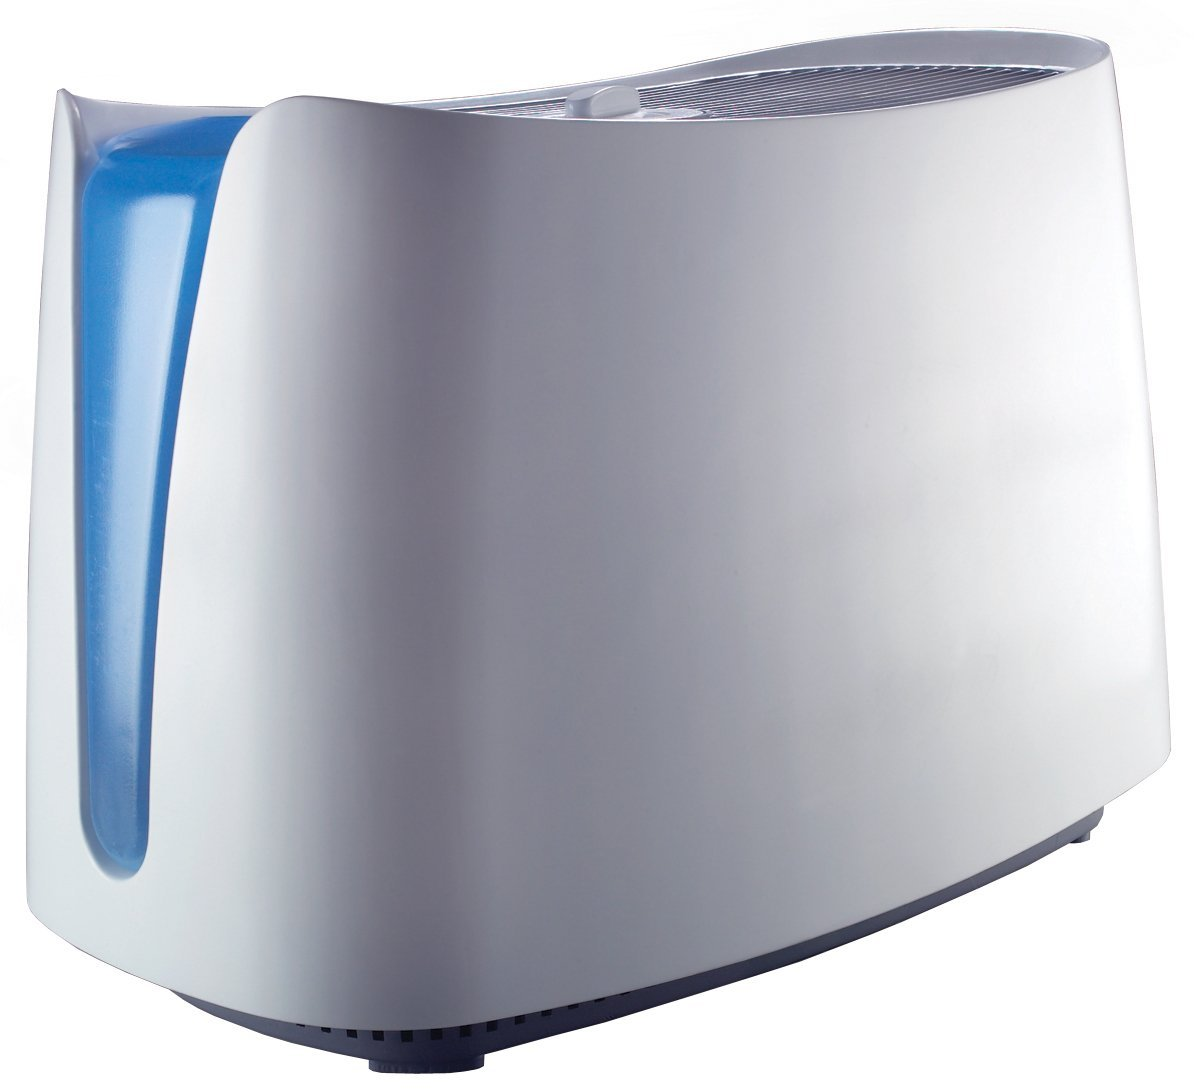 Honeywell Humidifier Review 2014 2015 Reviews and Guides #2D699E